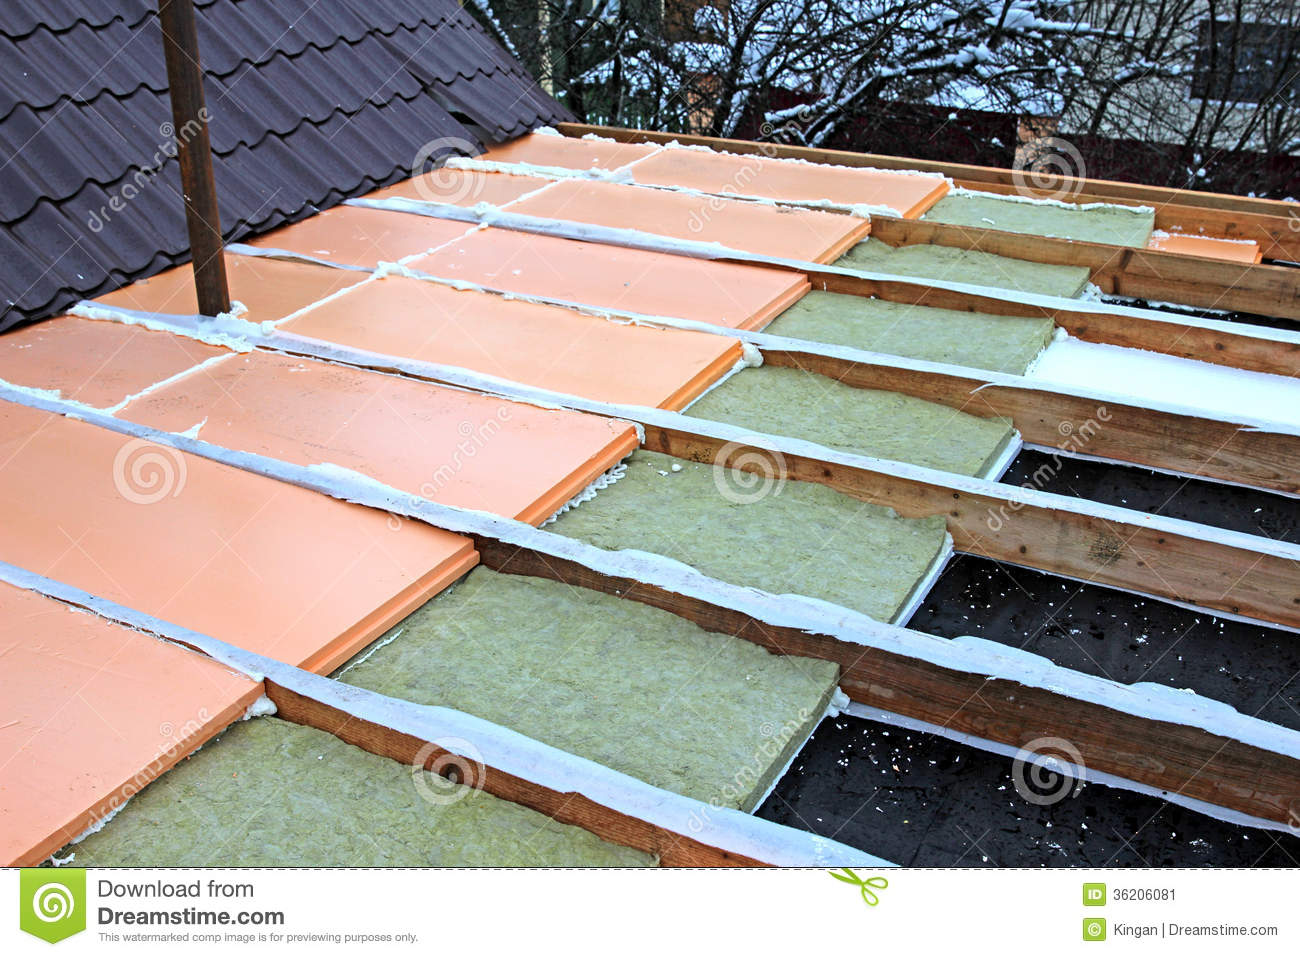 Awesome Laying Slabs Of Heat Insulation Material Between Beams